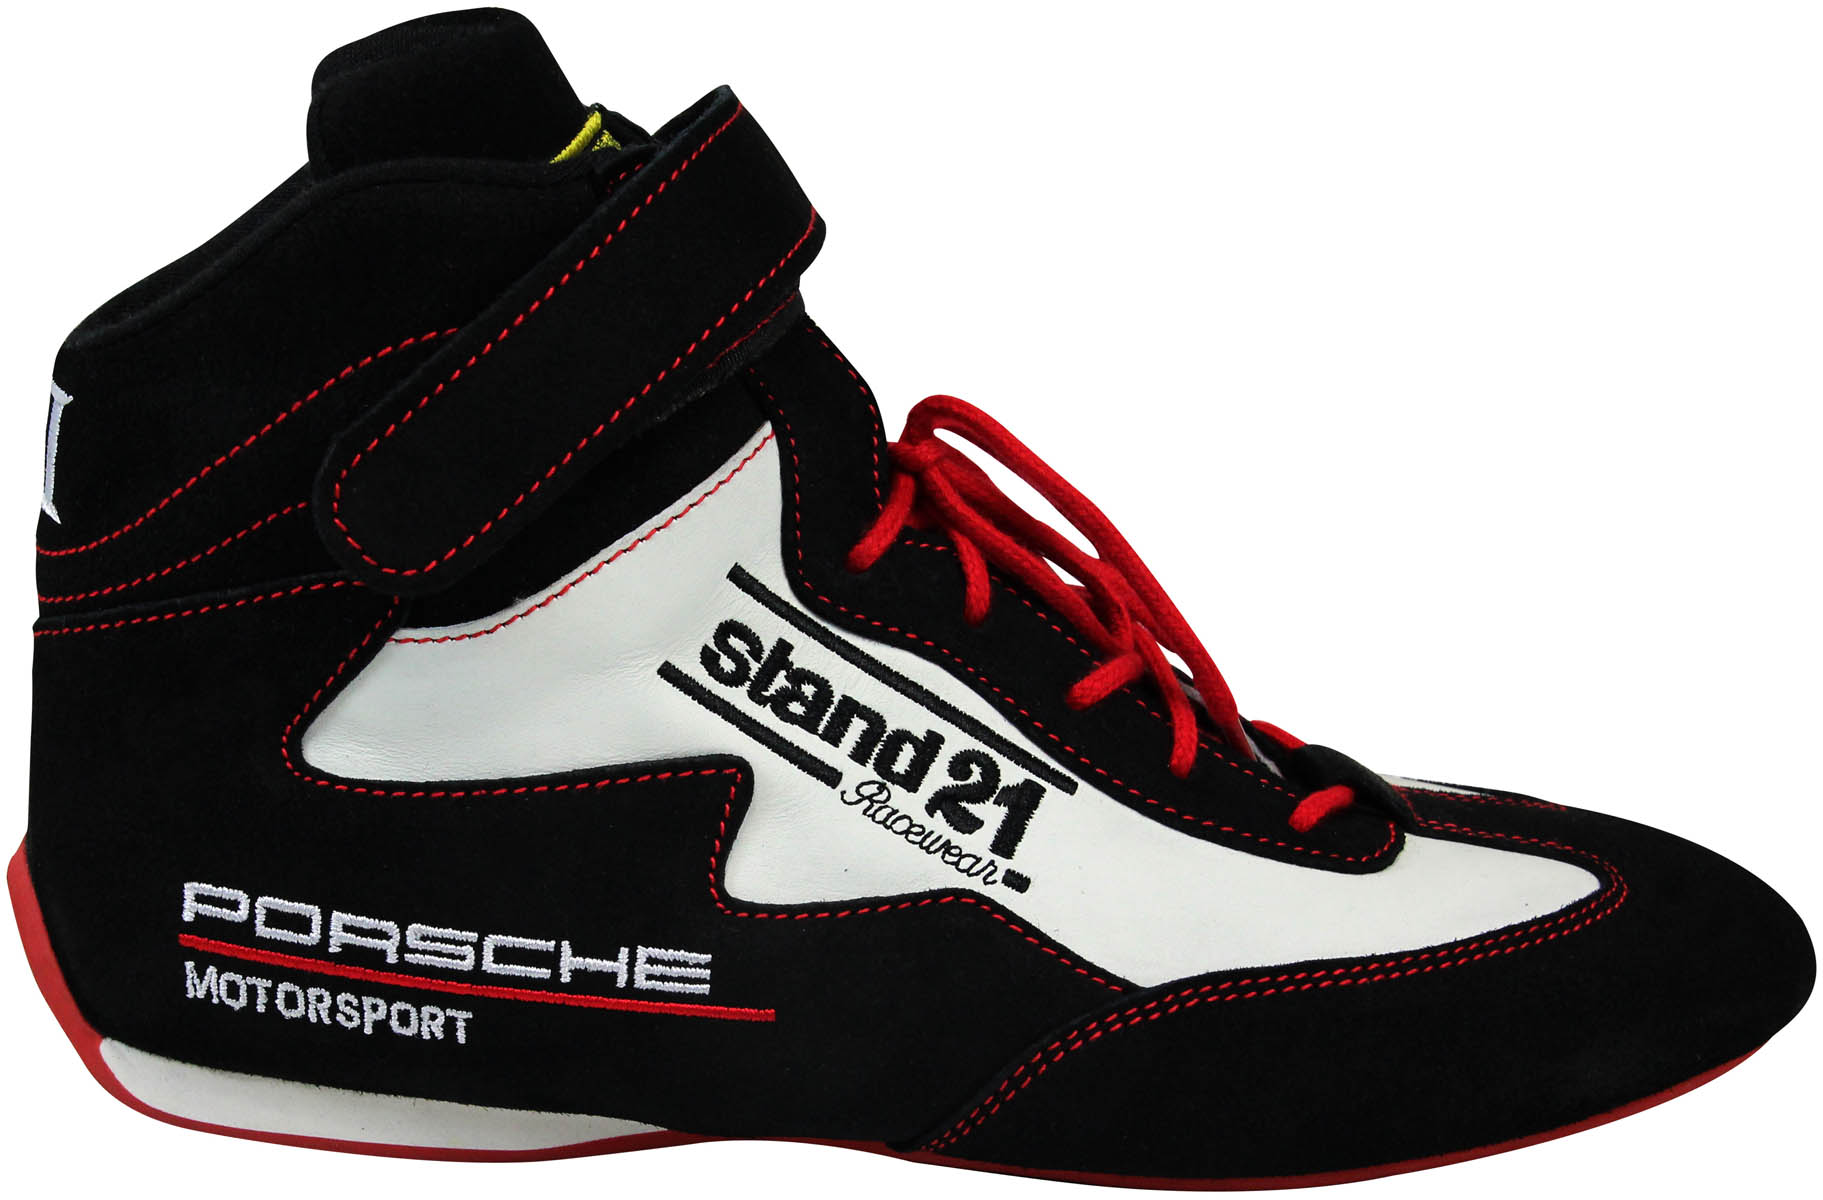 Porsche Motorsport stock Daytona II shoes